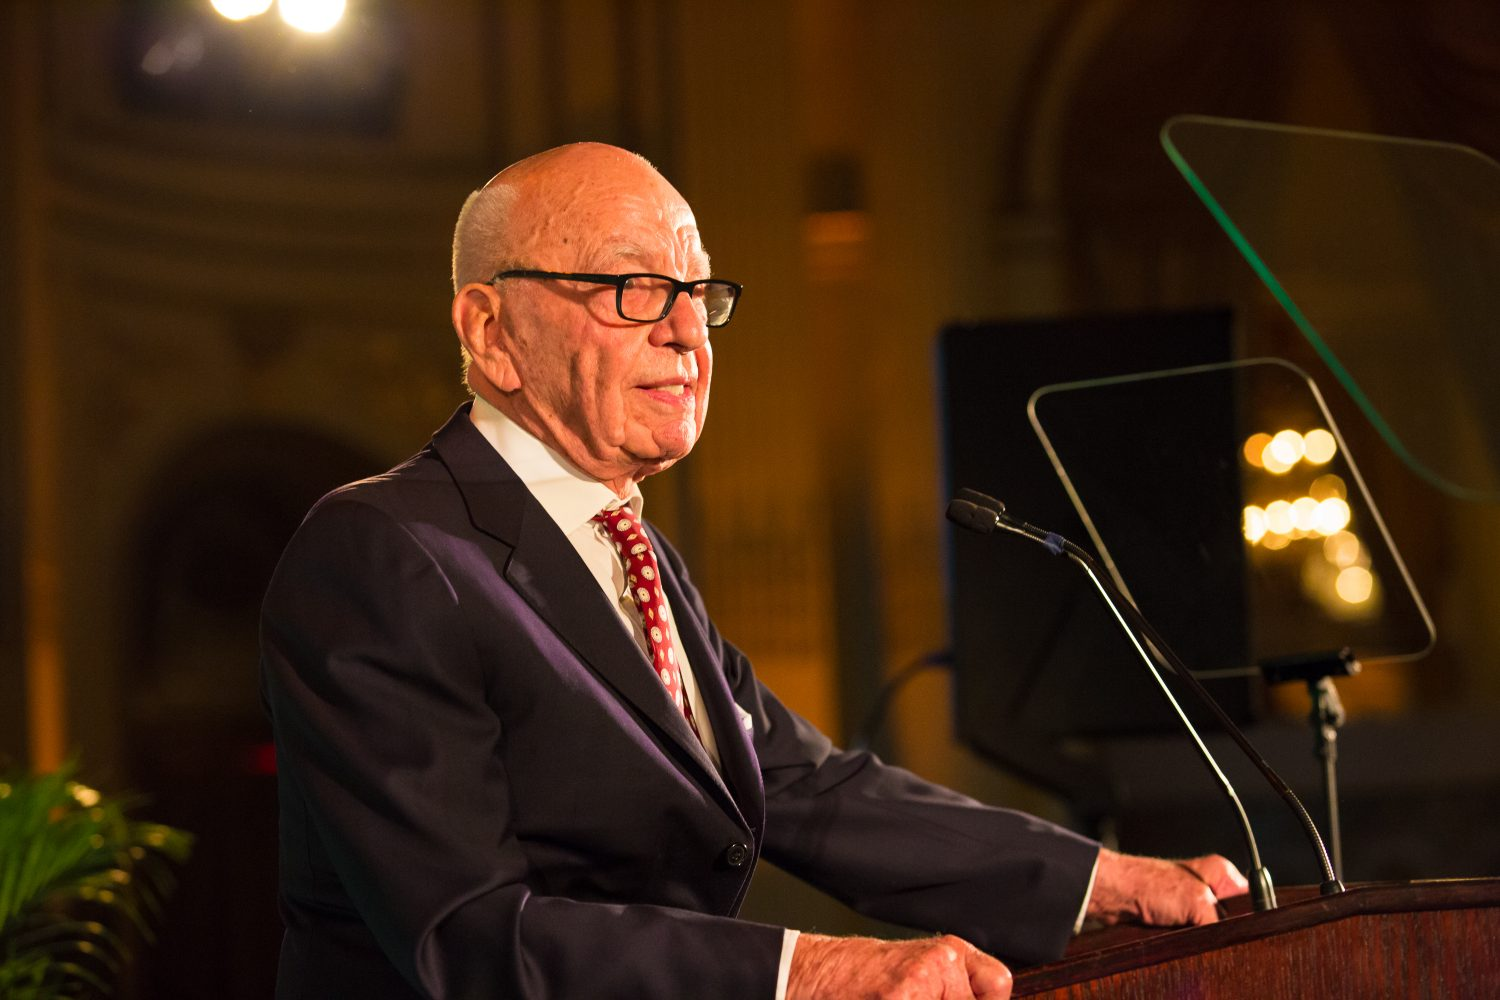 Lessons from Rupert Murdoch's Success